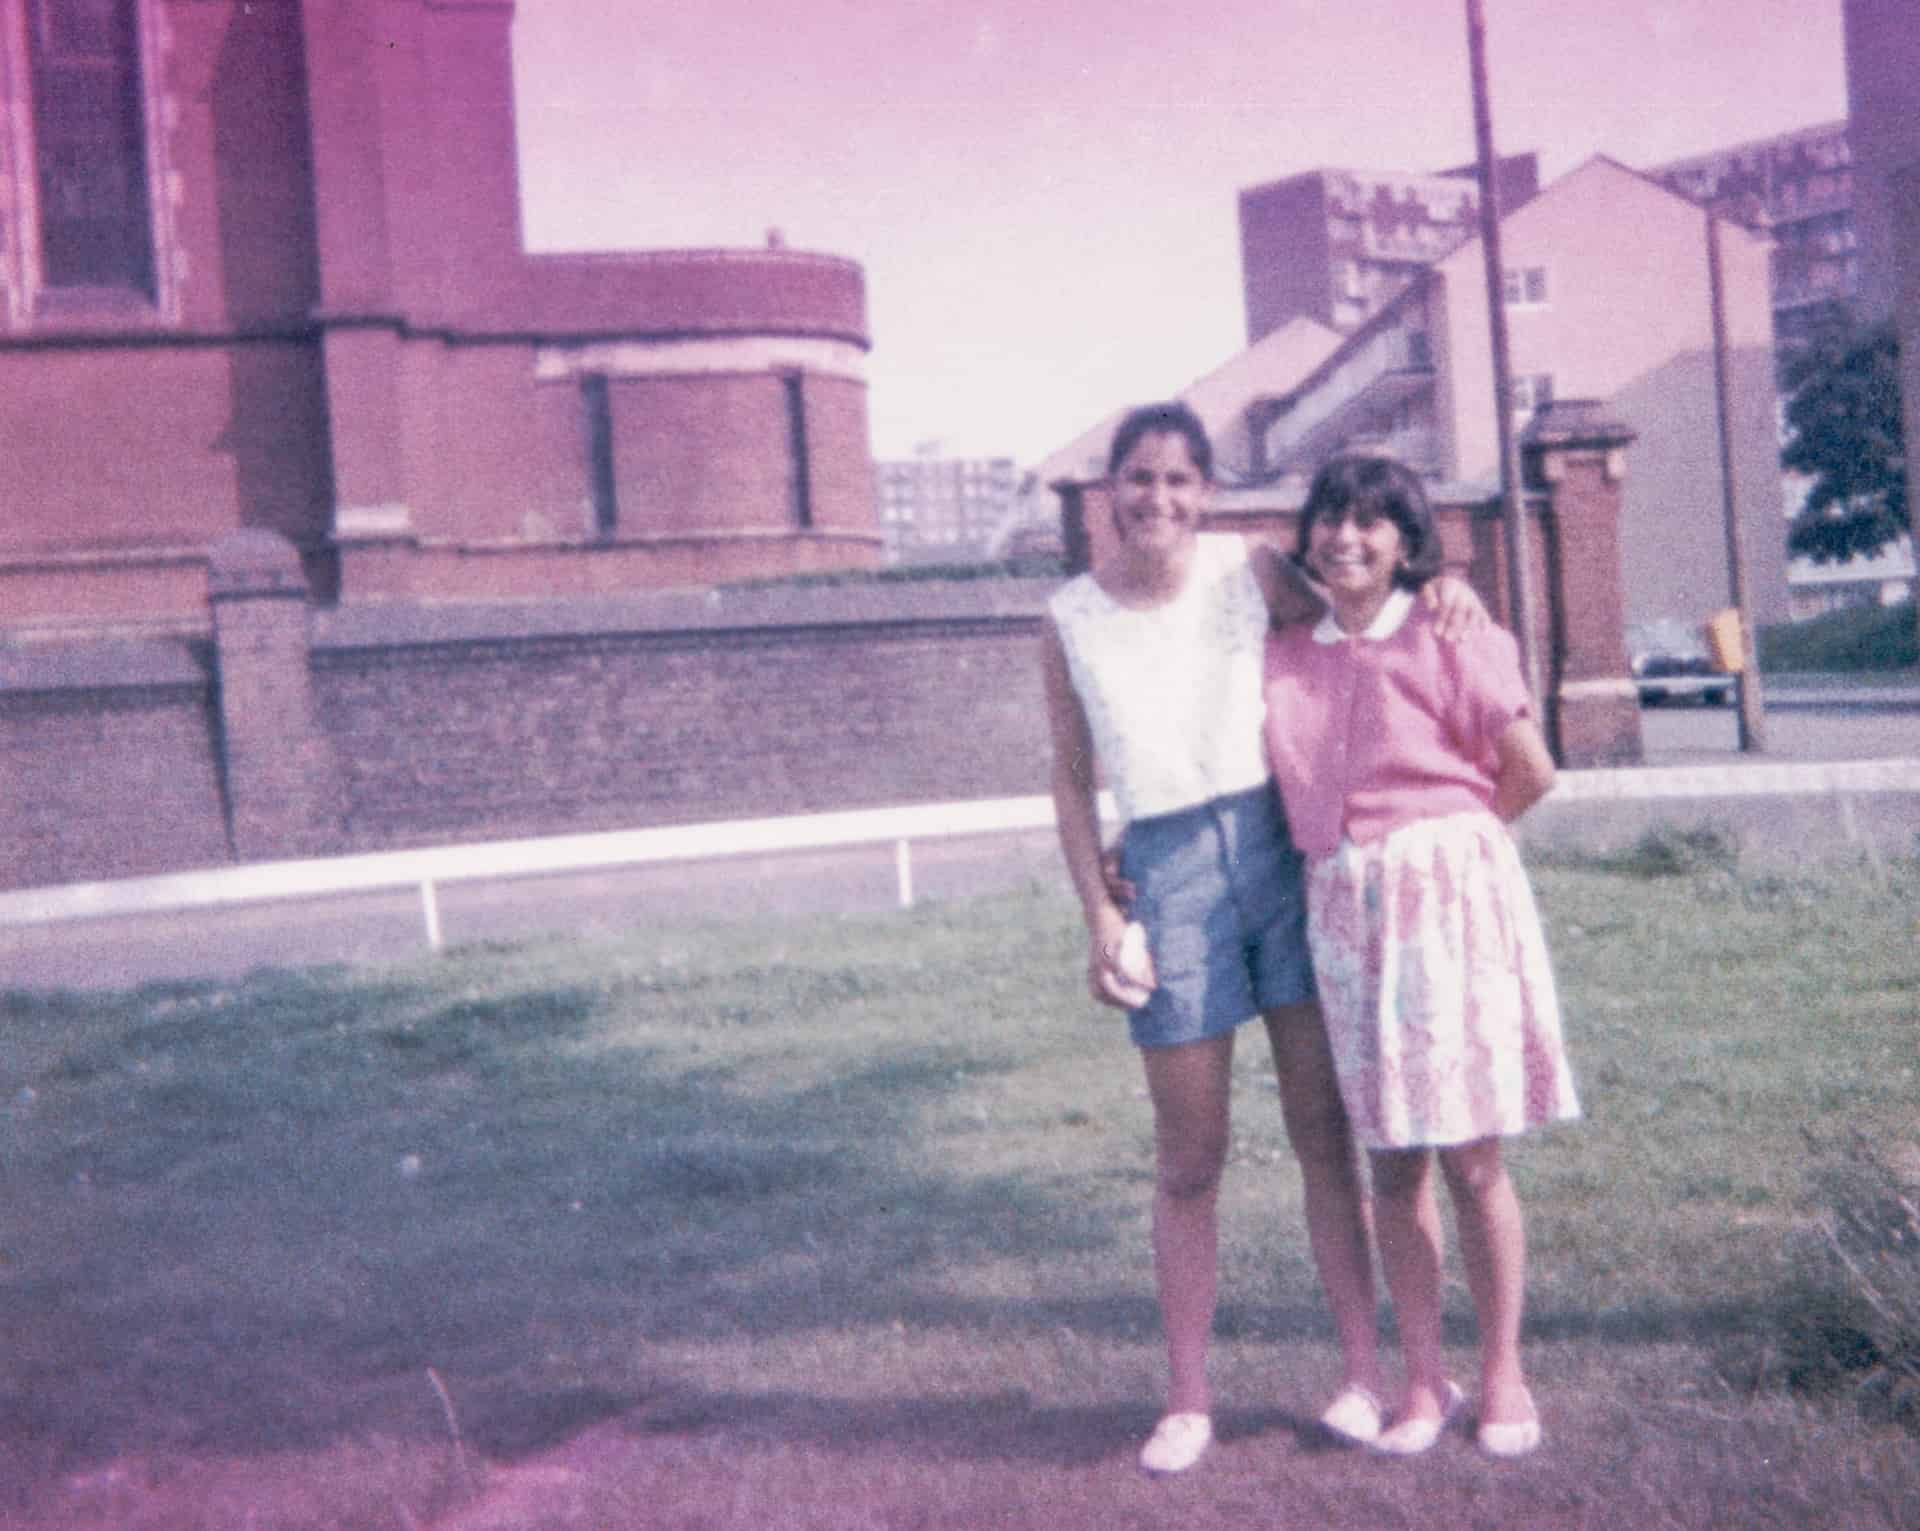 Marianne and Vee in Smethwick in the 1980s